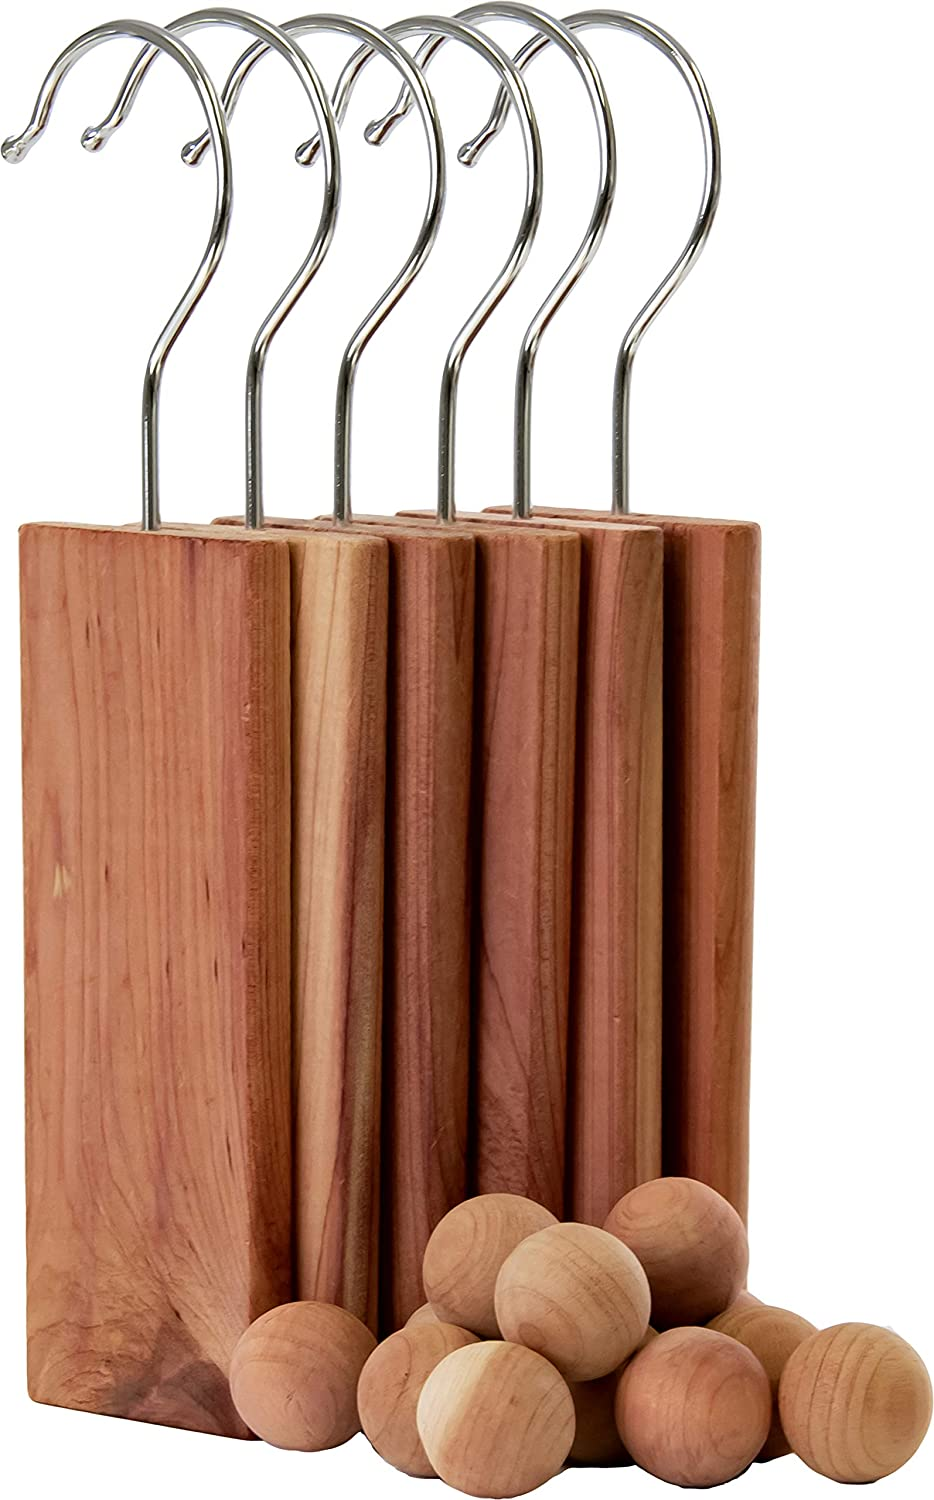 Laundry Solutions by Westex Cedar Closet Set with 6 Planks and 12 Balls